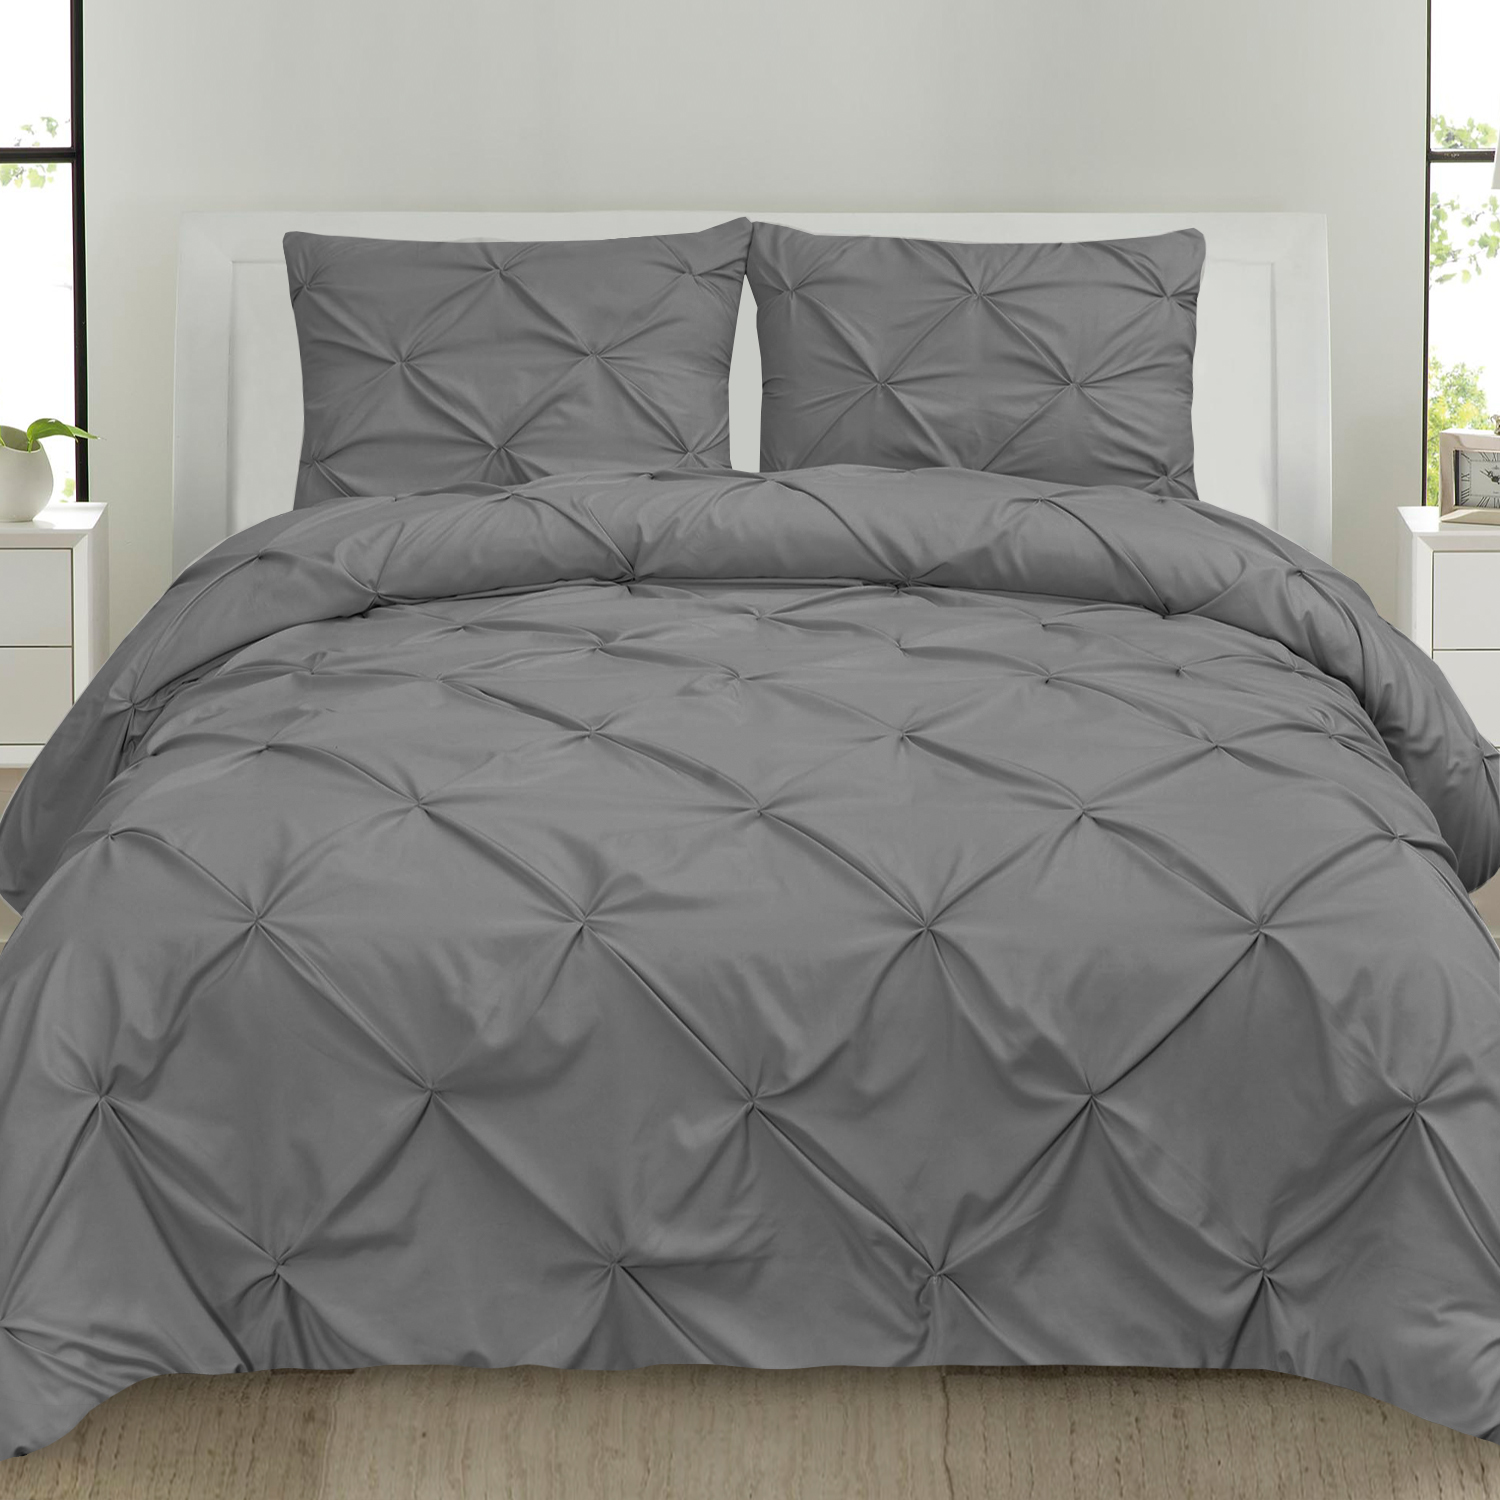 home bedding new luxury duvet cover set